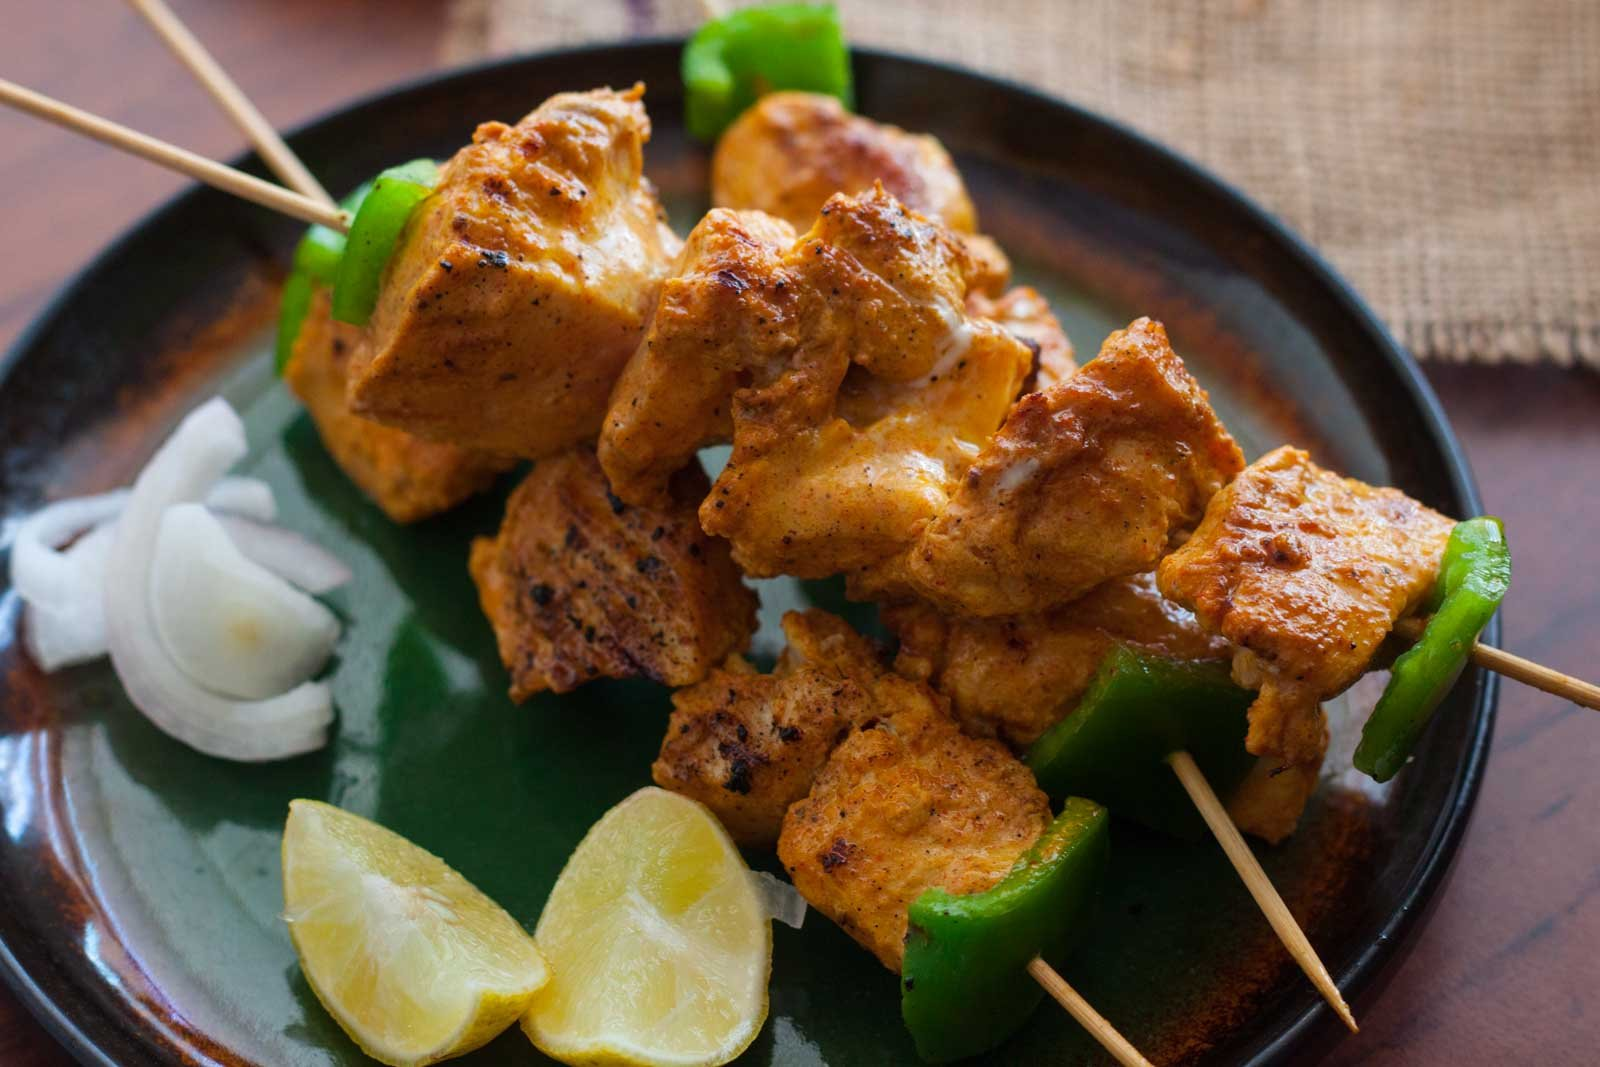 Chicken tikka recipe by archanas kitchen chicken tikka is a traditional recipe made from chicken that is marinated in a luscious red mixture and cooked in tandoor until charred forumfinder Image collections